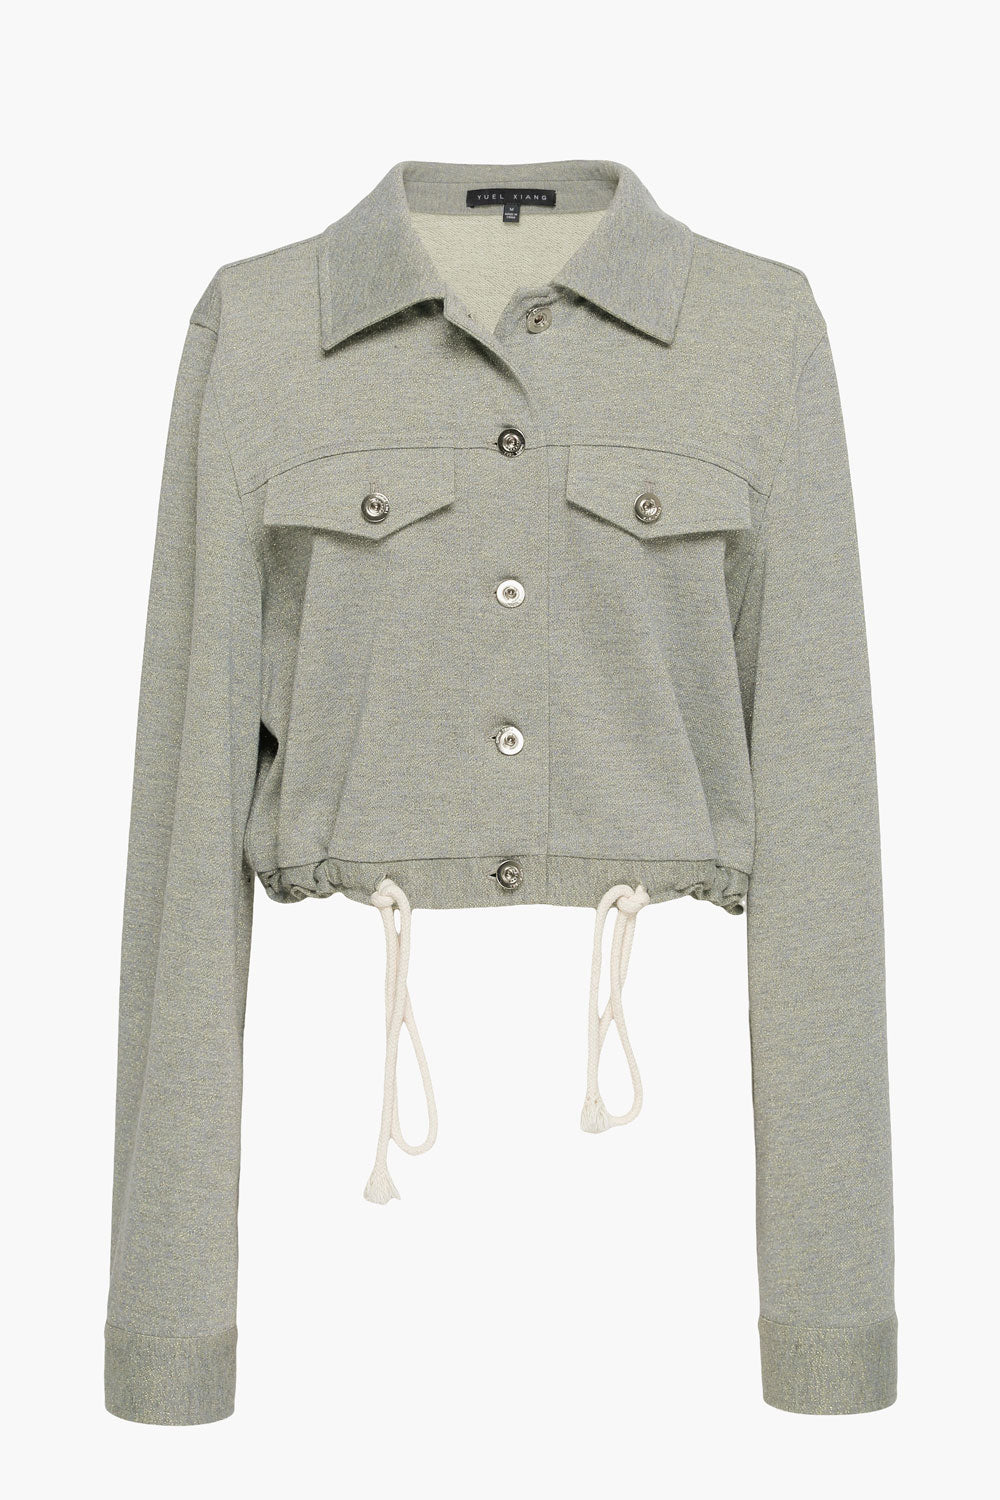 Shimmer Gold-Gray Jacket